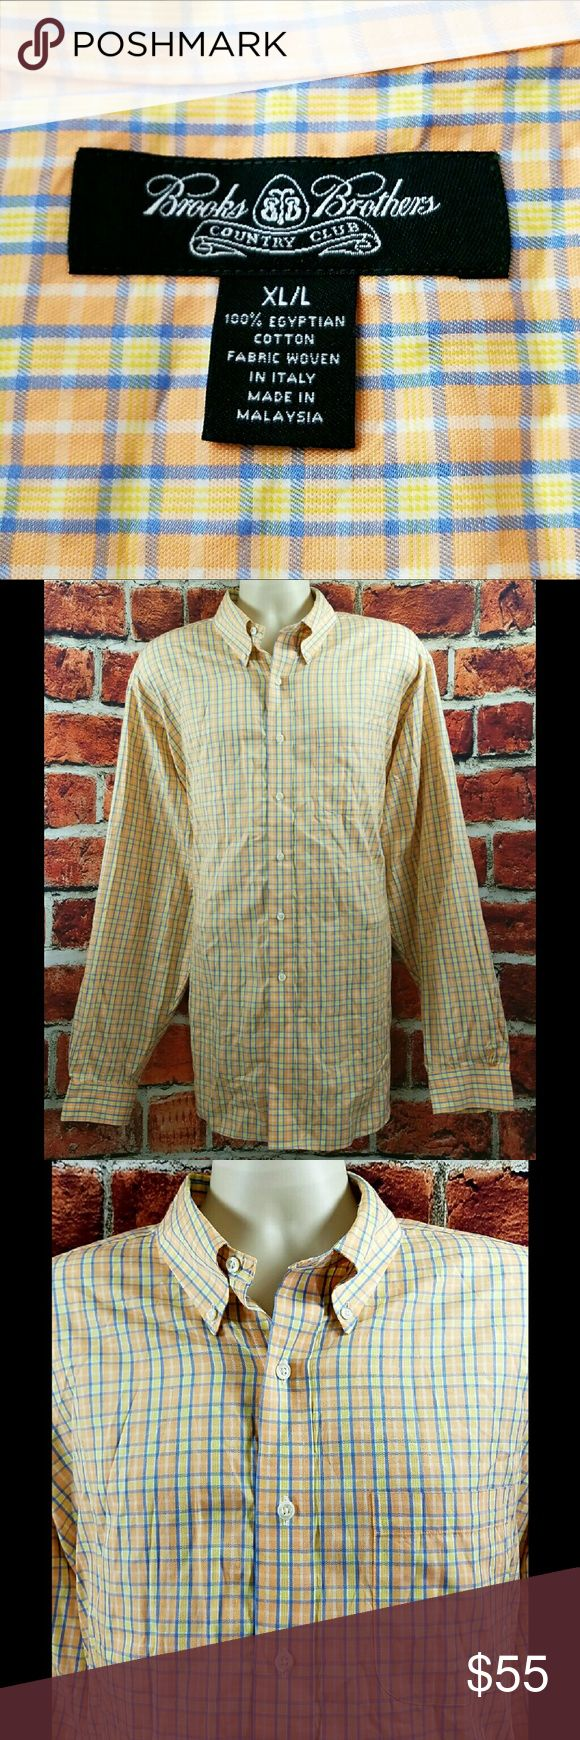 Mens Brooks Brothers Egyptian Cotton Shirt Sz XLT Mens Brooks Brothers Country Club Plaid Egyptian Cotton Casual Shirt Size: XLT  About this item:  Mint to Like New Condition Egyptian Cotton $112.50 at Brooks Bros.  Size: XL/Long(Tall) Across Chest: 27 Length: 34 Sleeve: 27 Brooks Brothers Shirts Casual Button Down Shirts